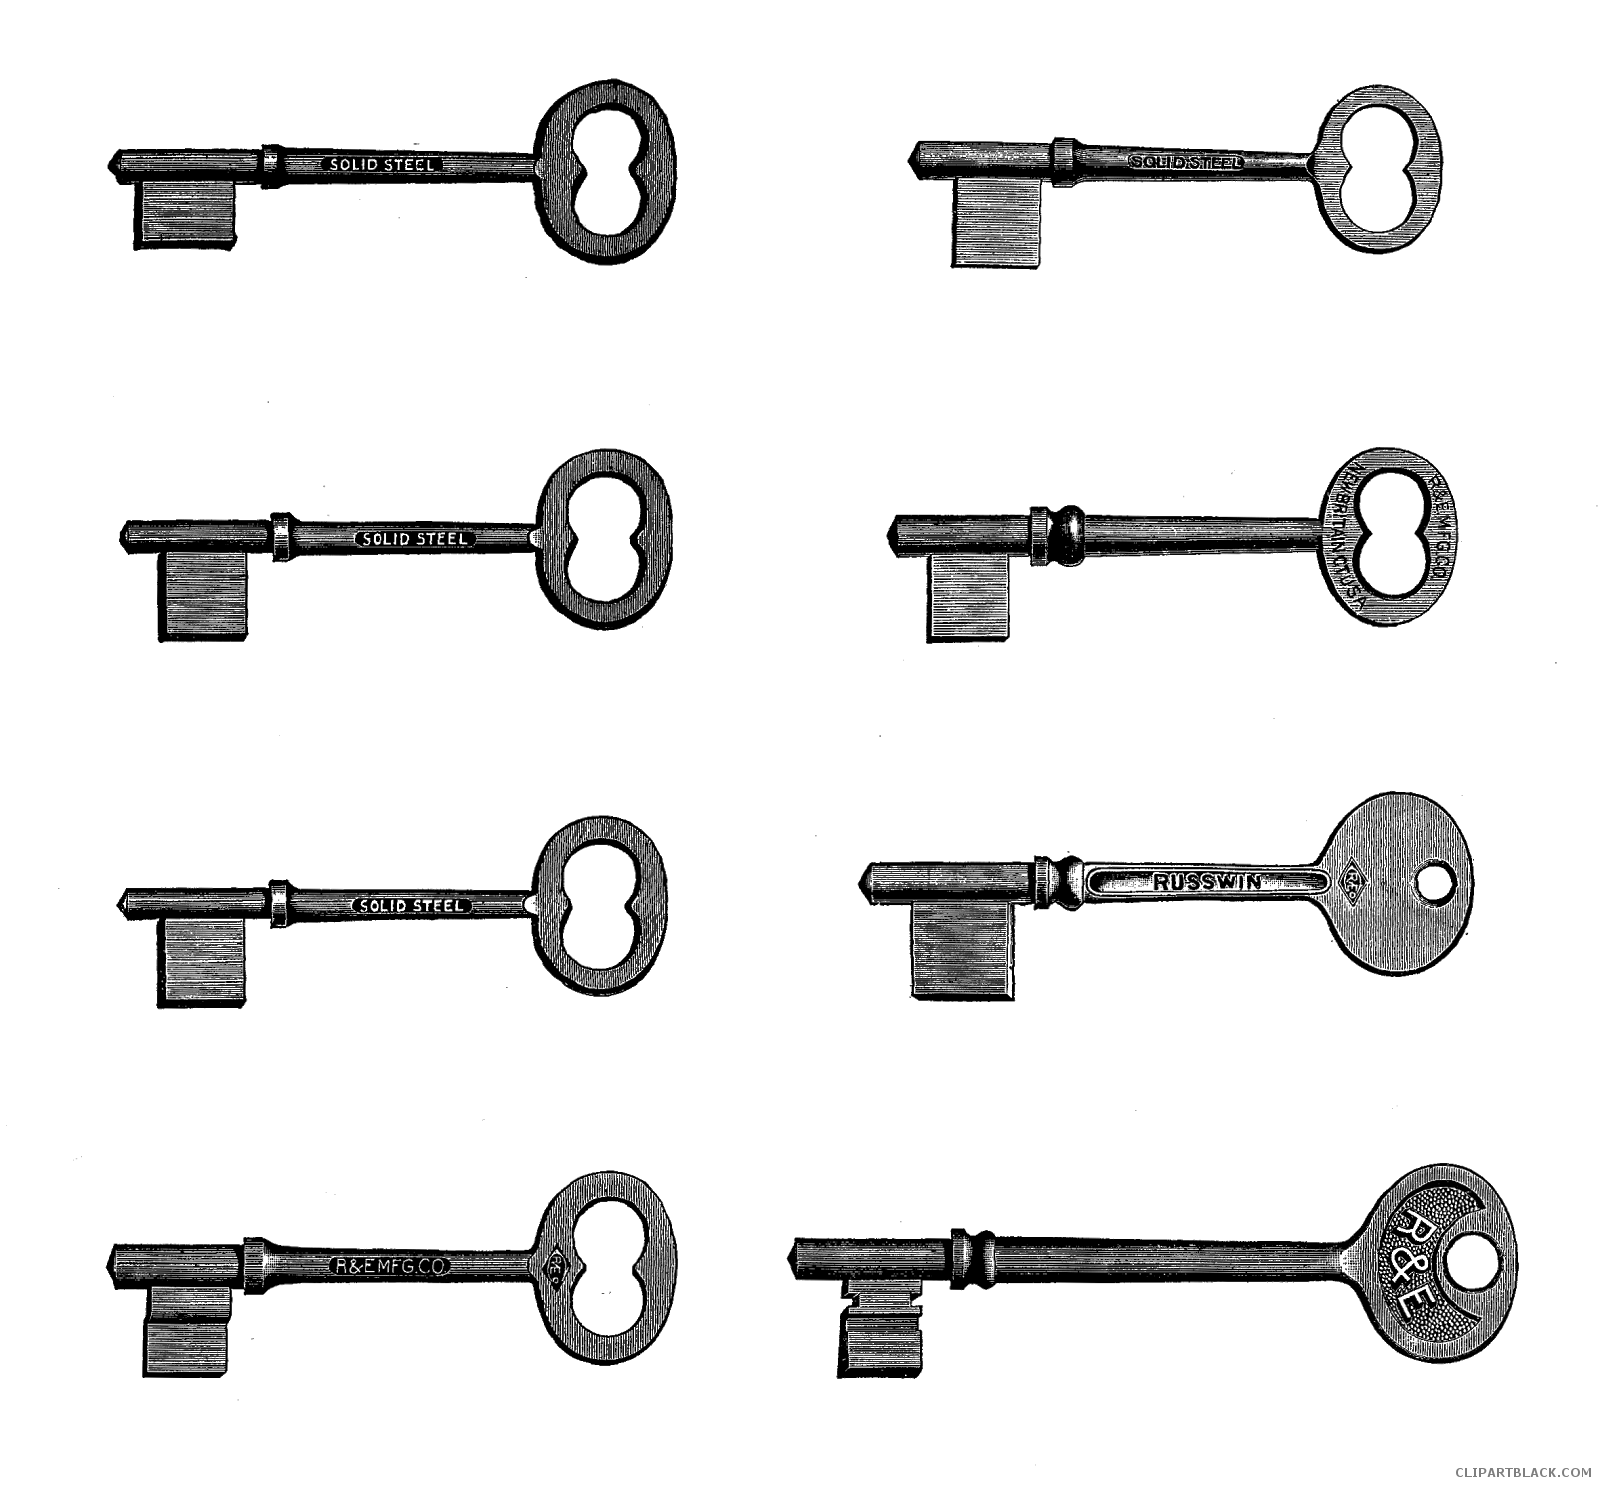 Key tools free images. Keys clipart black and white